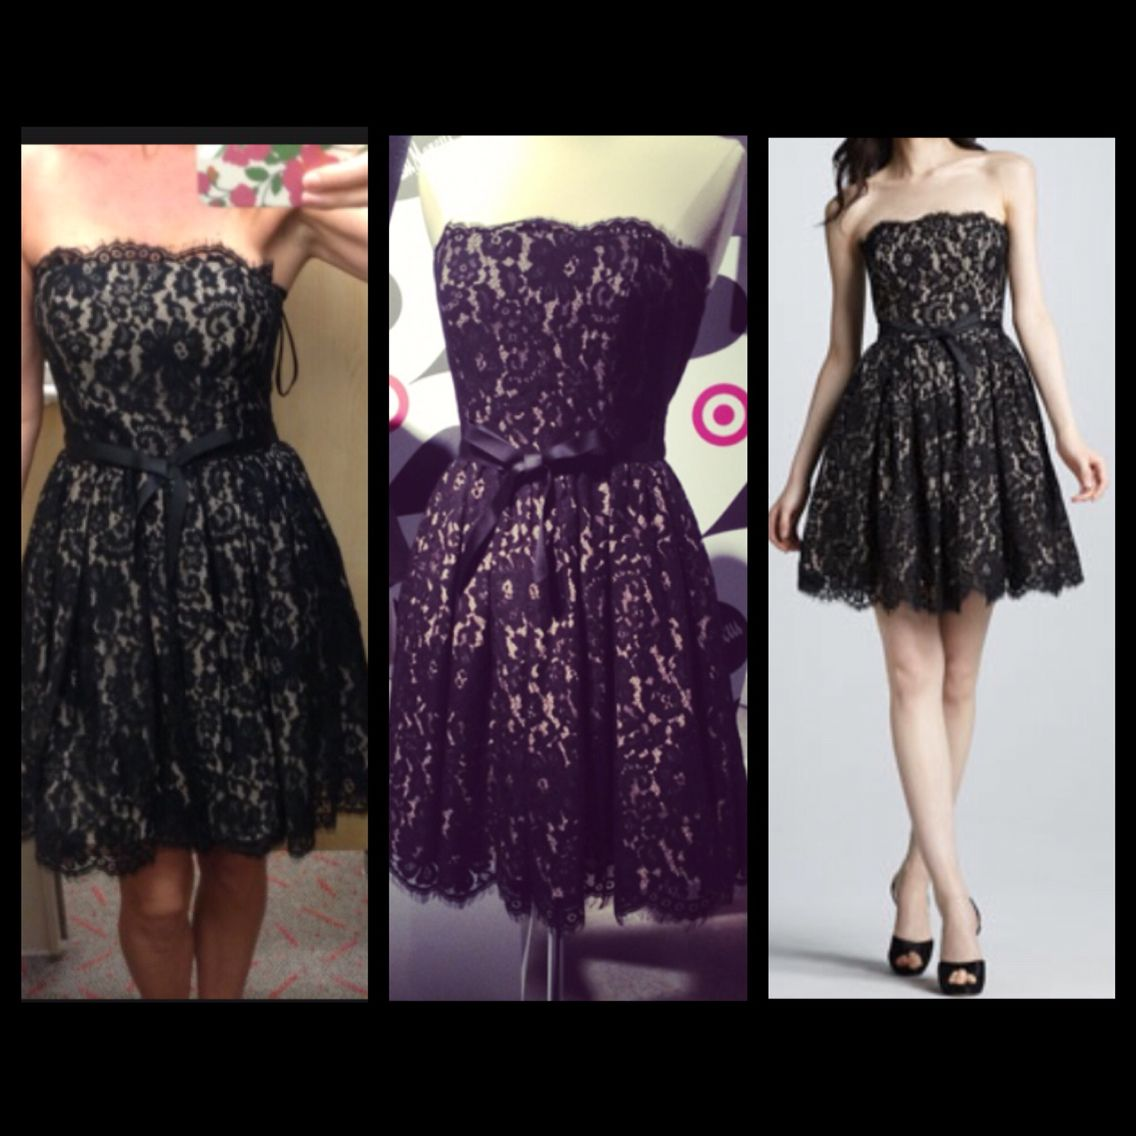 Black dress neiman marcus - Robert Rodriguez Neiman Marcus Target Fit And Flare Lace Dress This Dress Is Black And